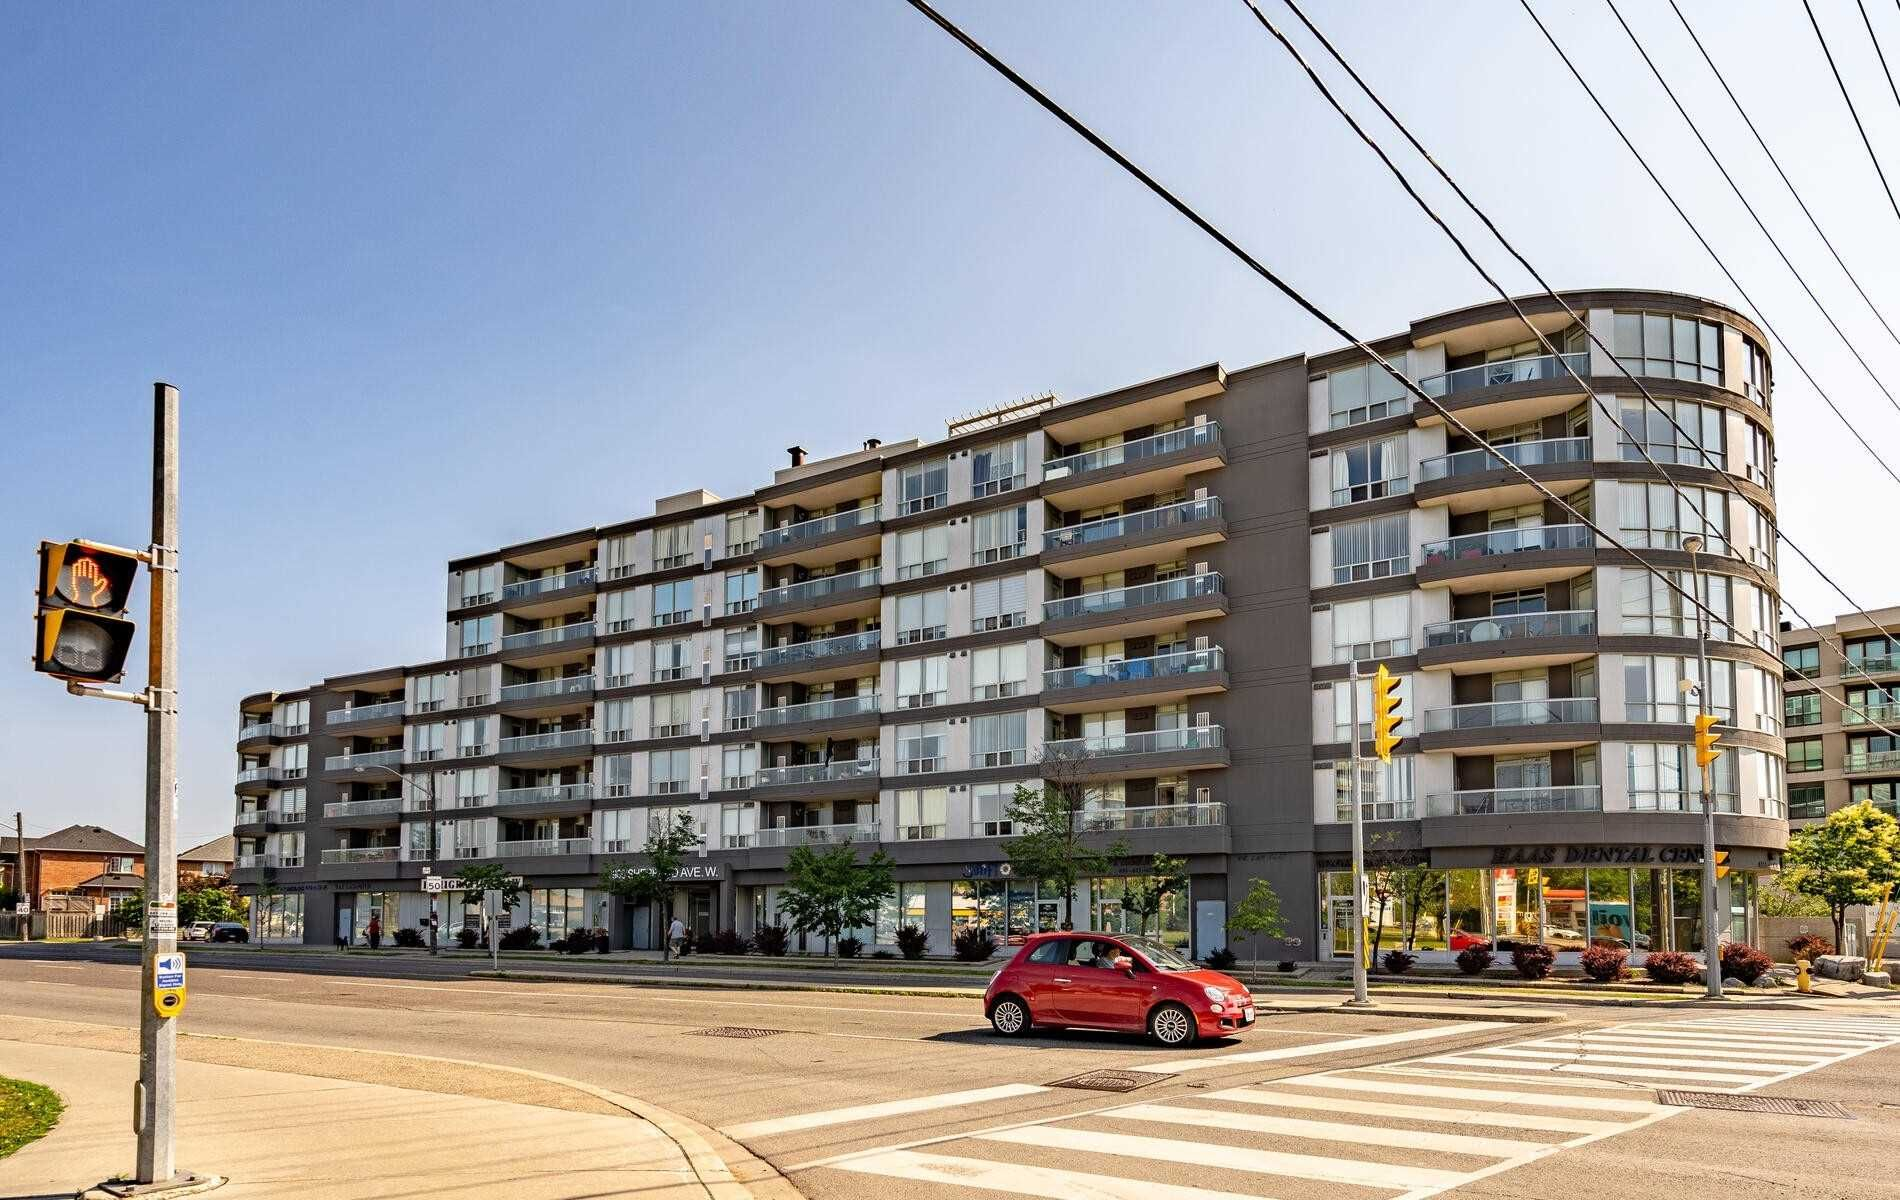 906 Sheppard Ave W, unit 302 for sale in Toronto - image #1